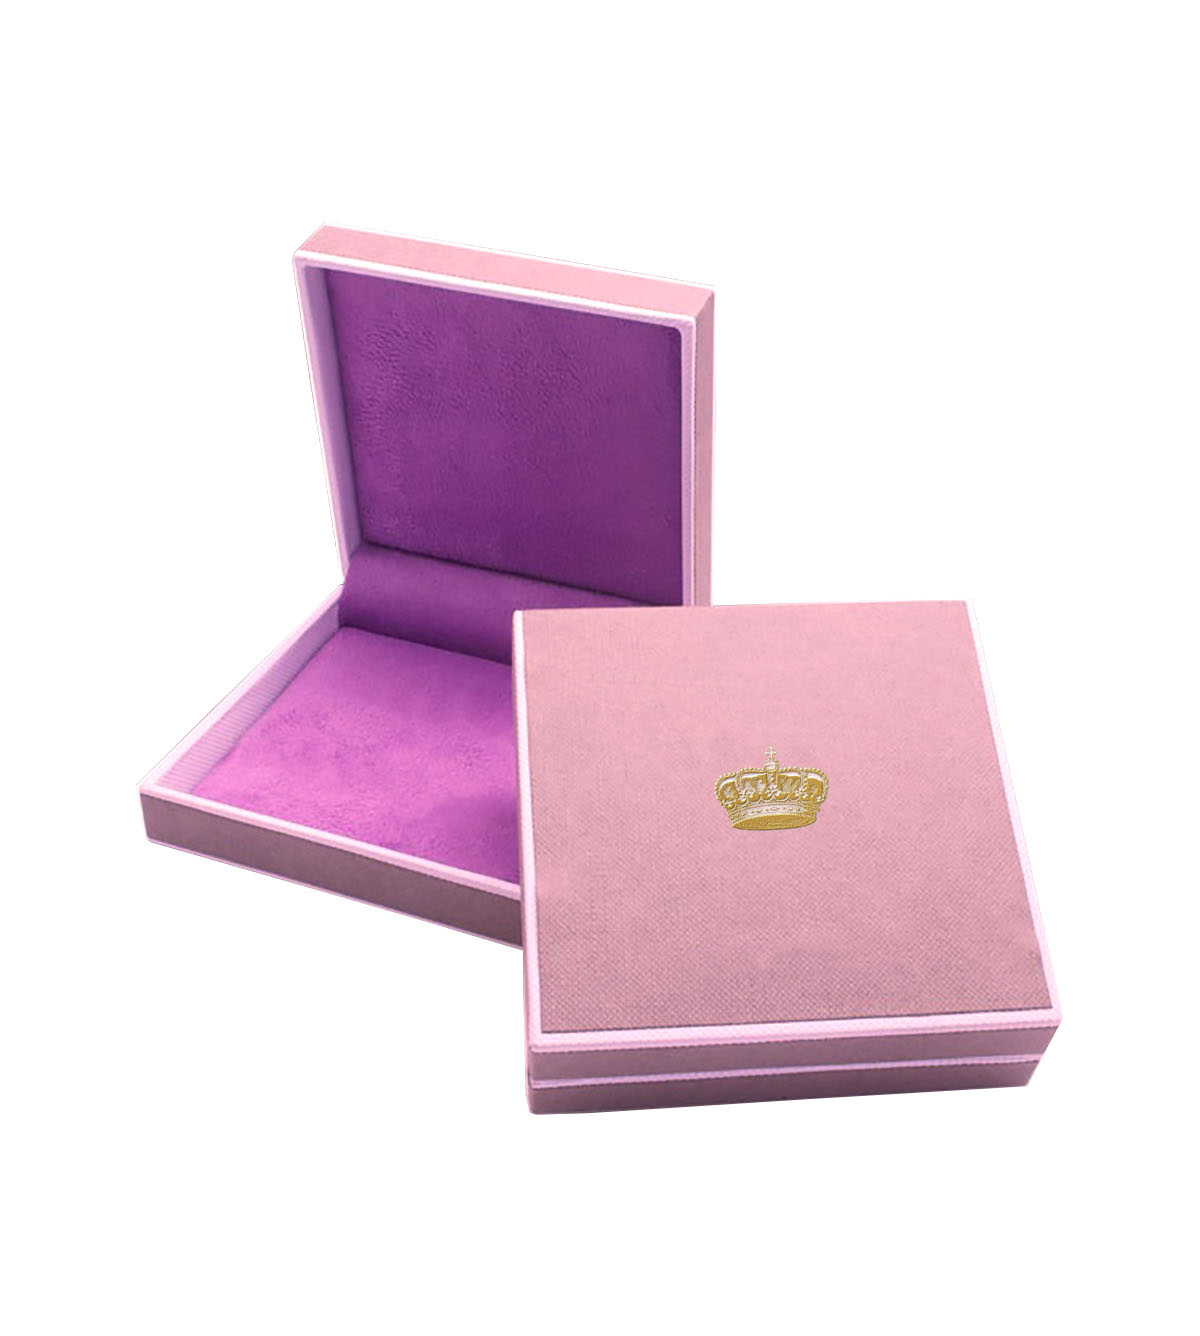 Jewelry Boxes Archives - Luxury Wedding Invitations, Handmade ...